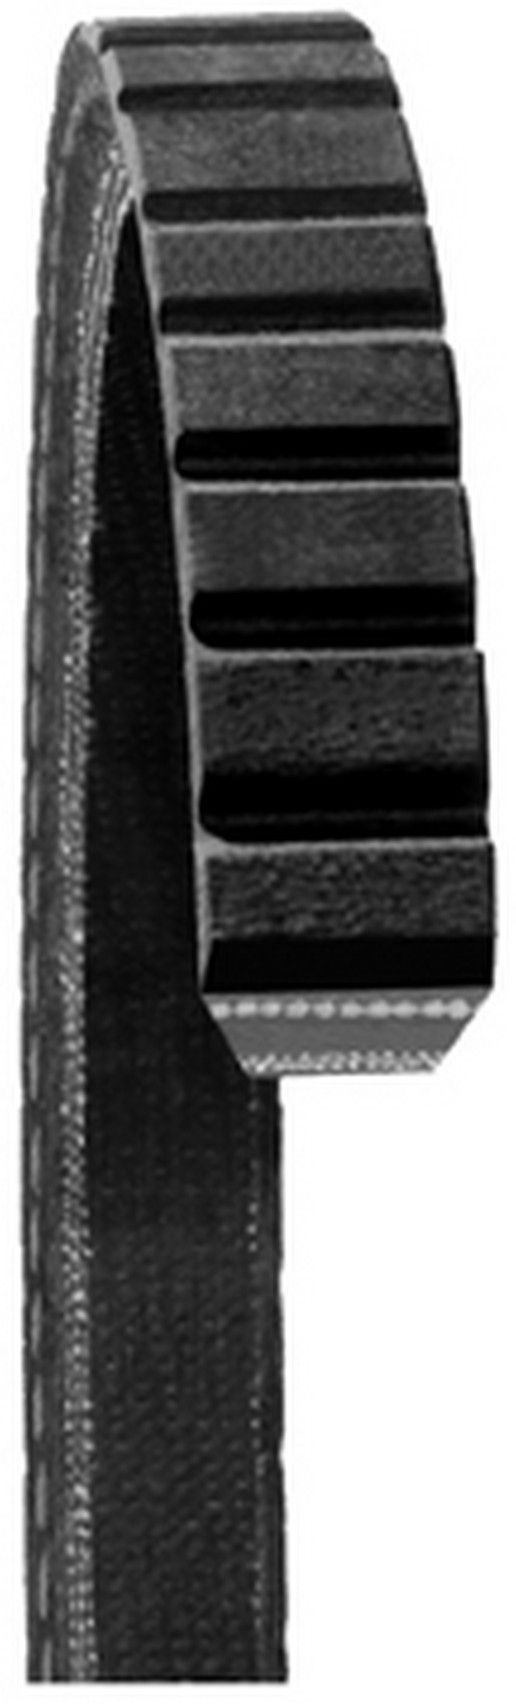 Accessory Drive Belt Dayco 15330DR